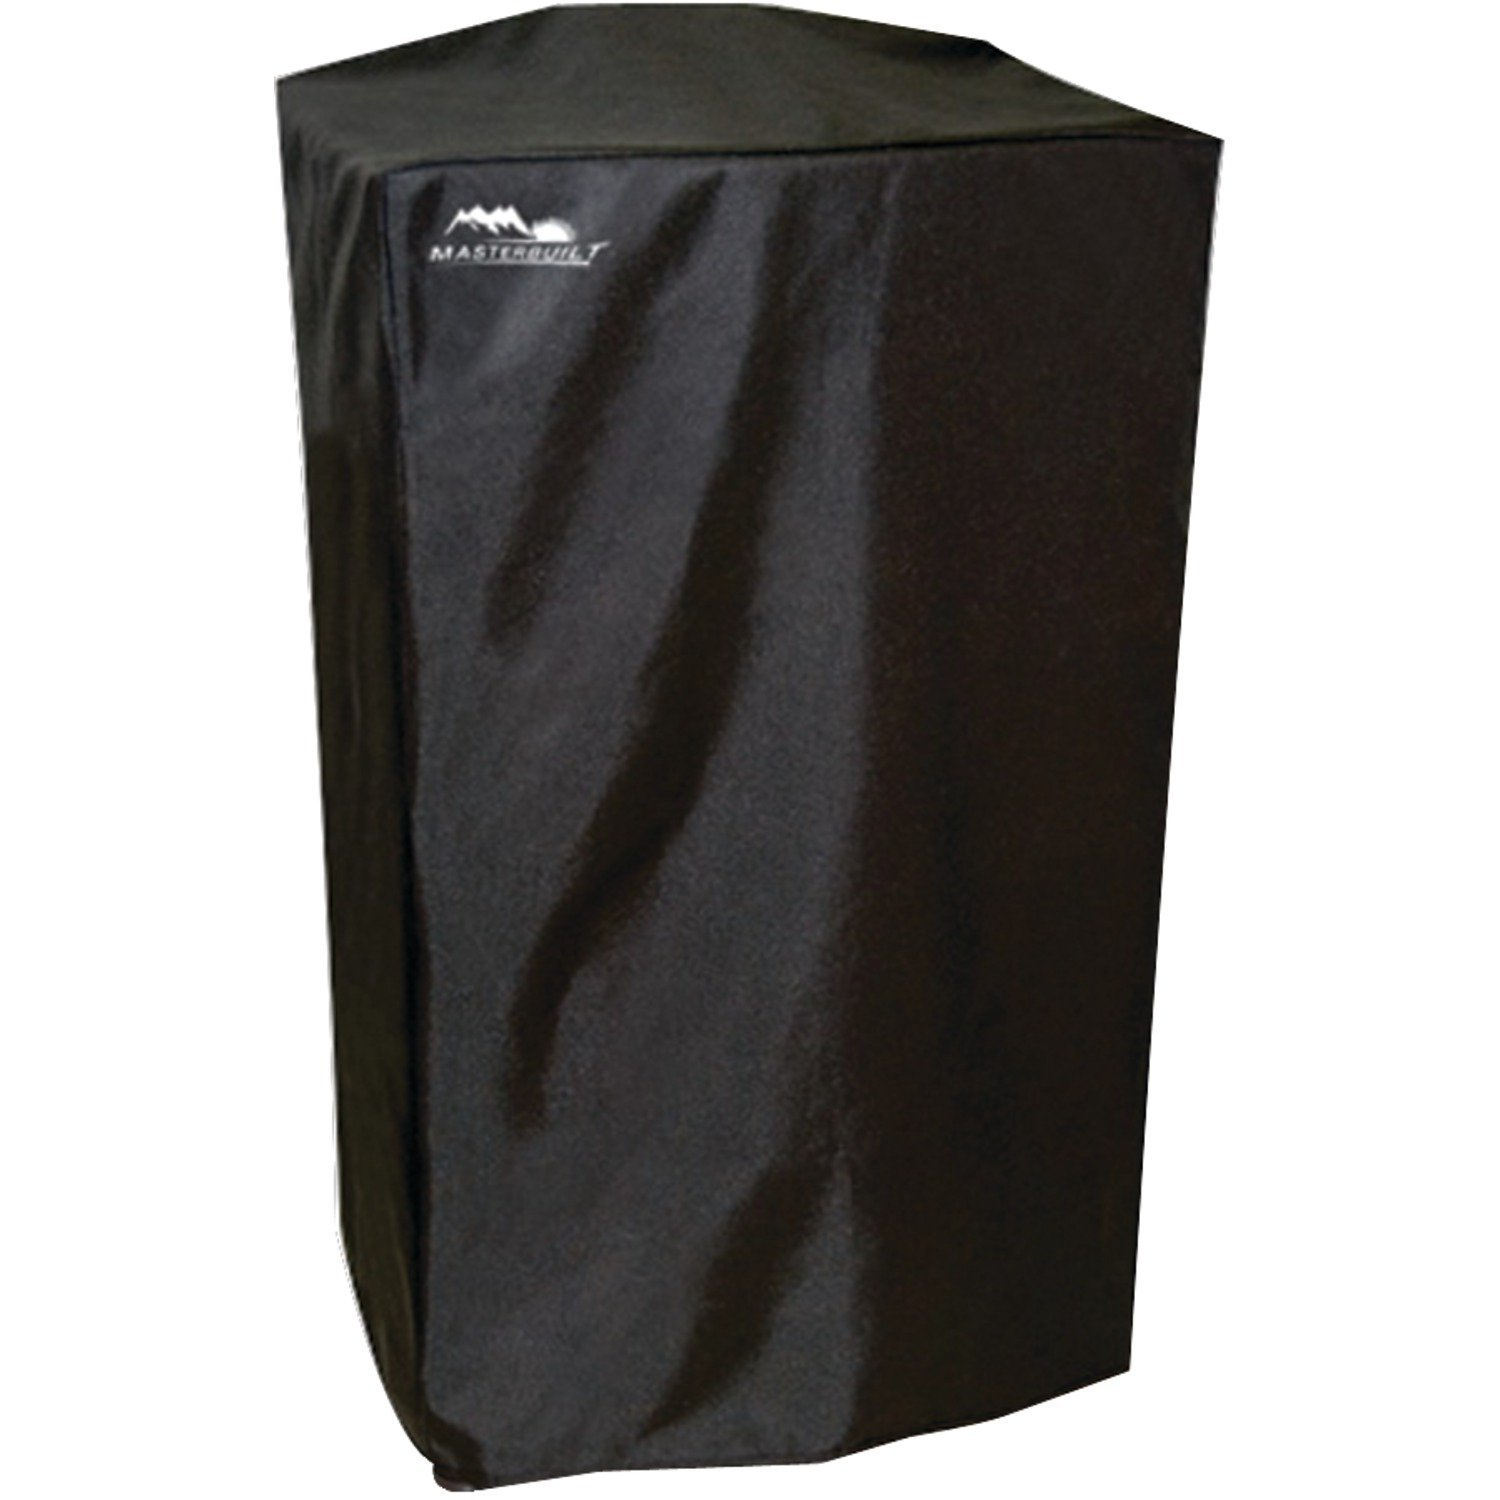 Masterbuilt 30 Electric Smoker Cover ''Product Category: Kitchen Appliances & Accessories/Kitchen Accessories''